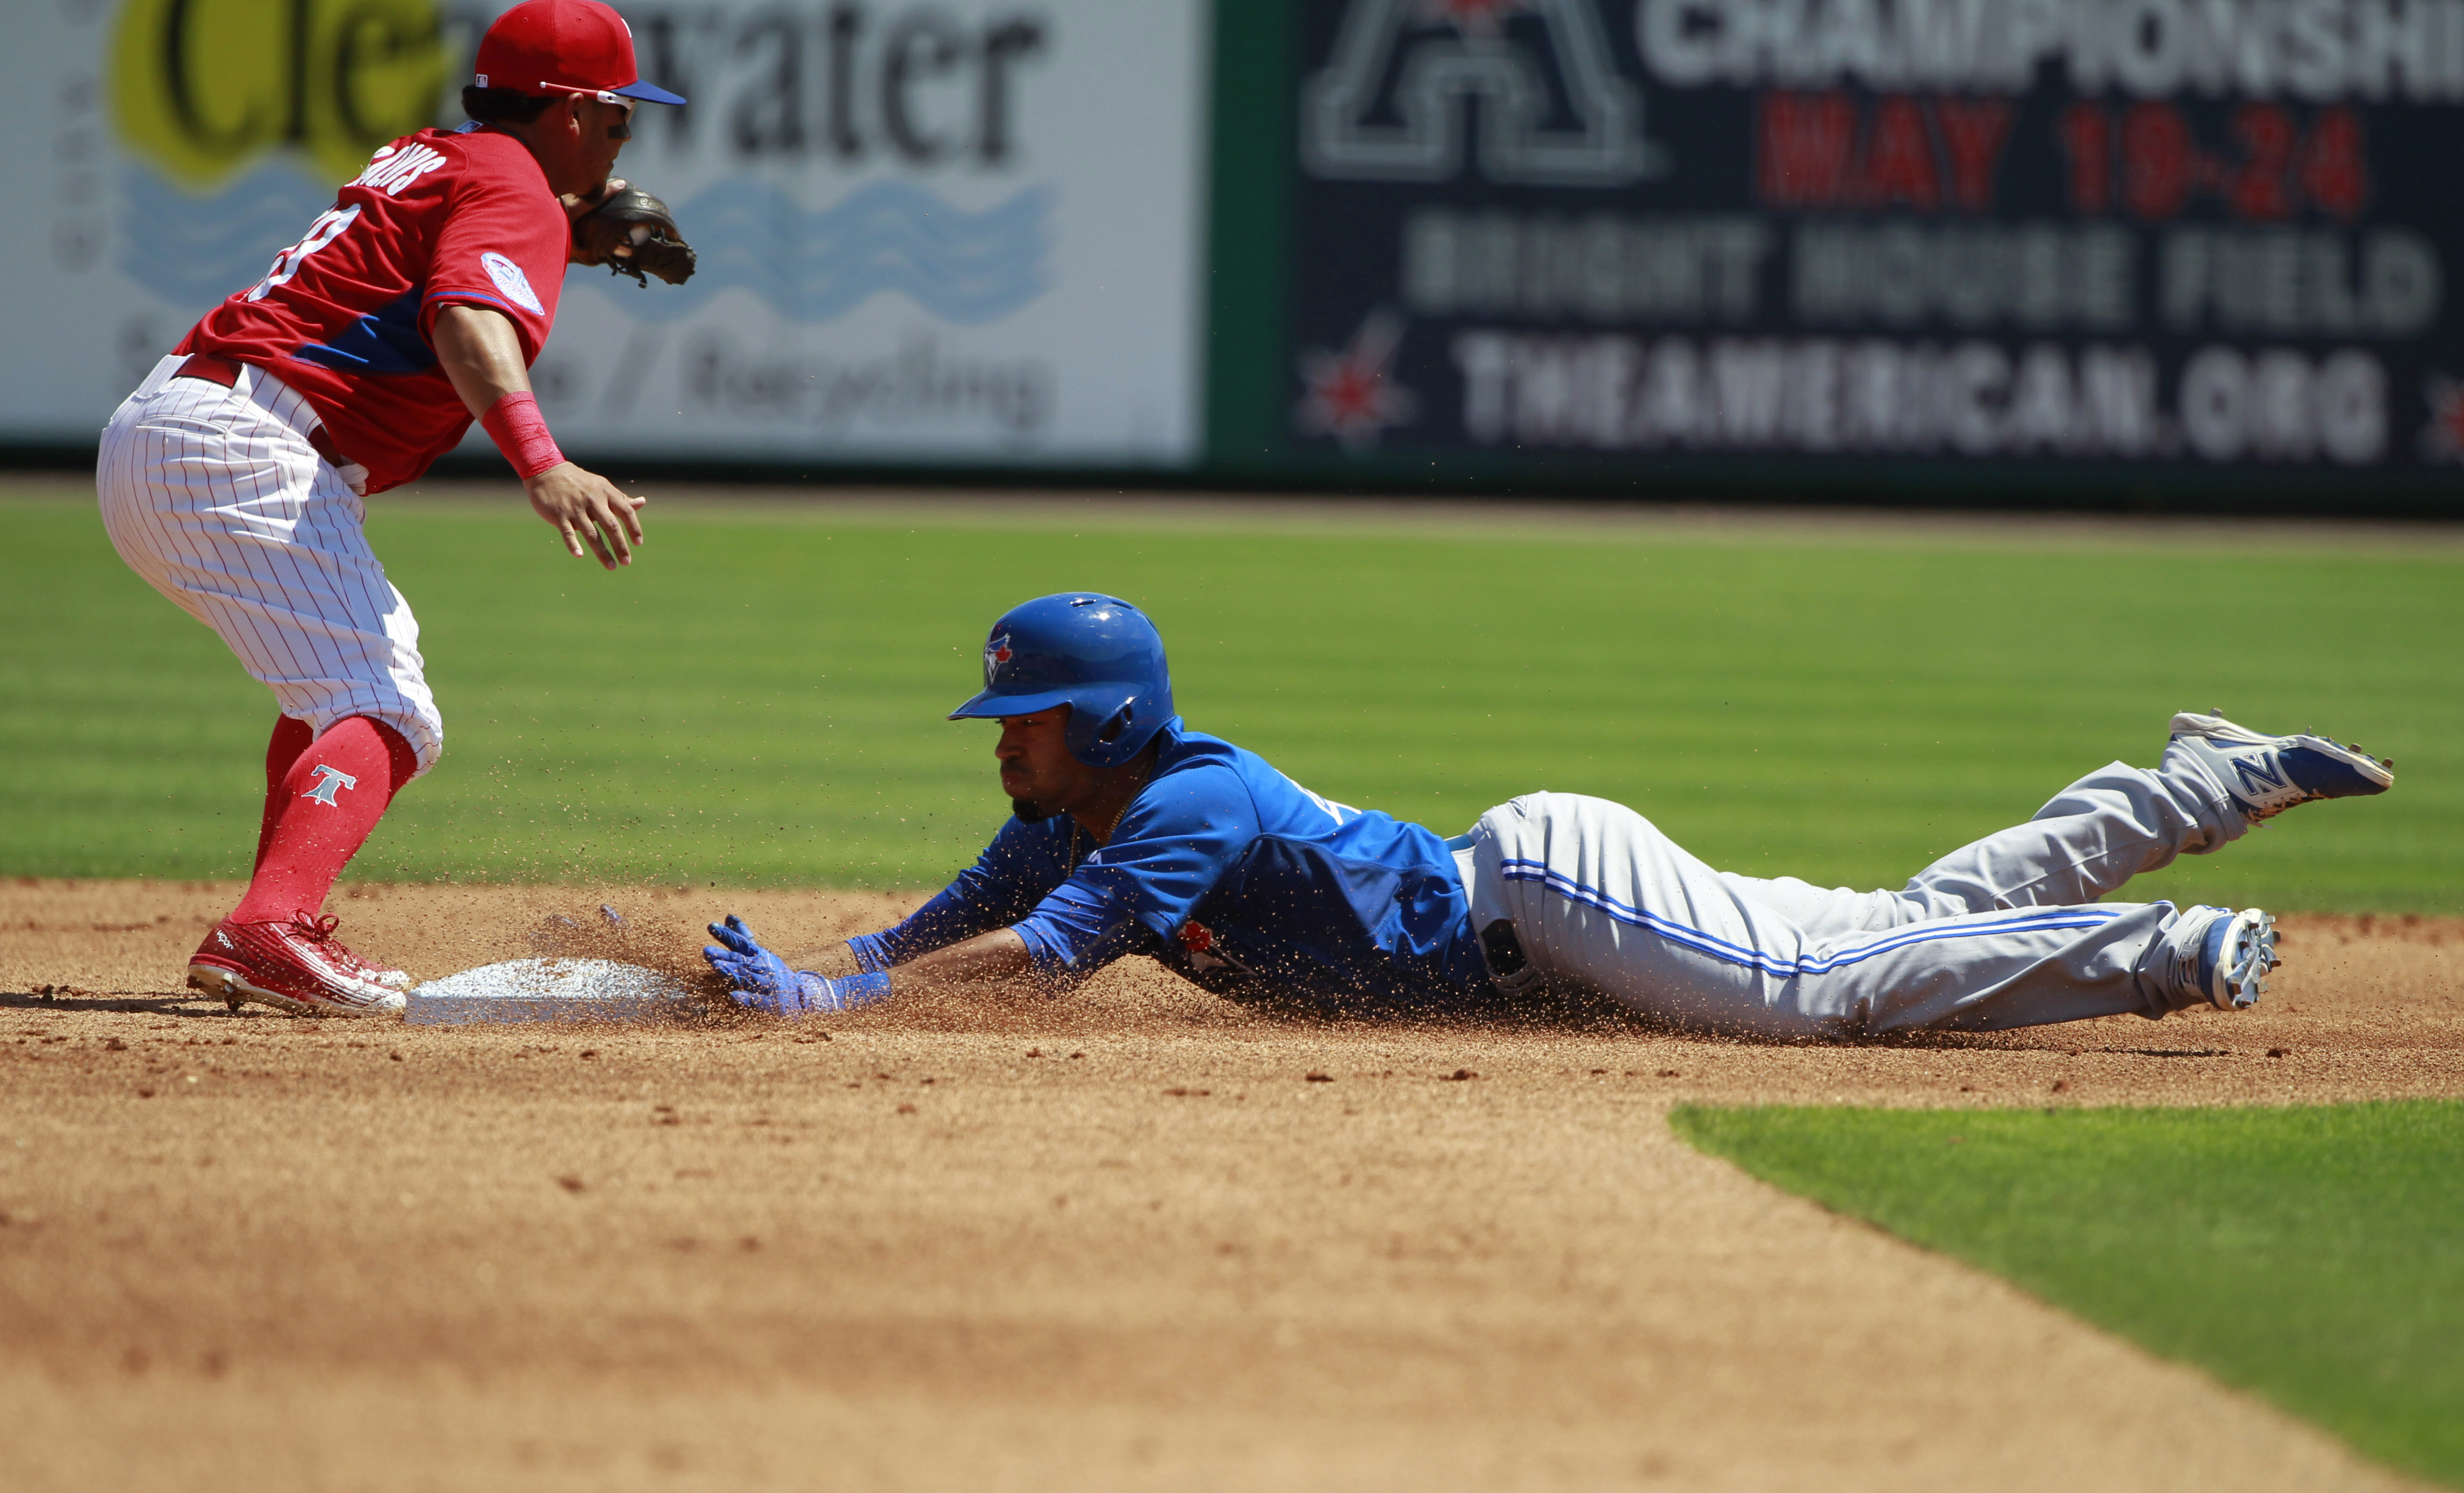 Dalton Pompey, notable source for cheap speed. (Kim Klement-USA TODAY Sports)